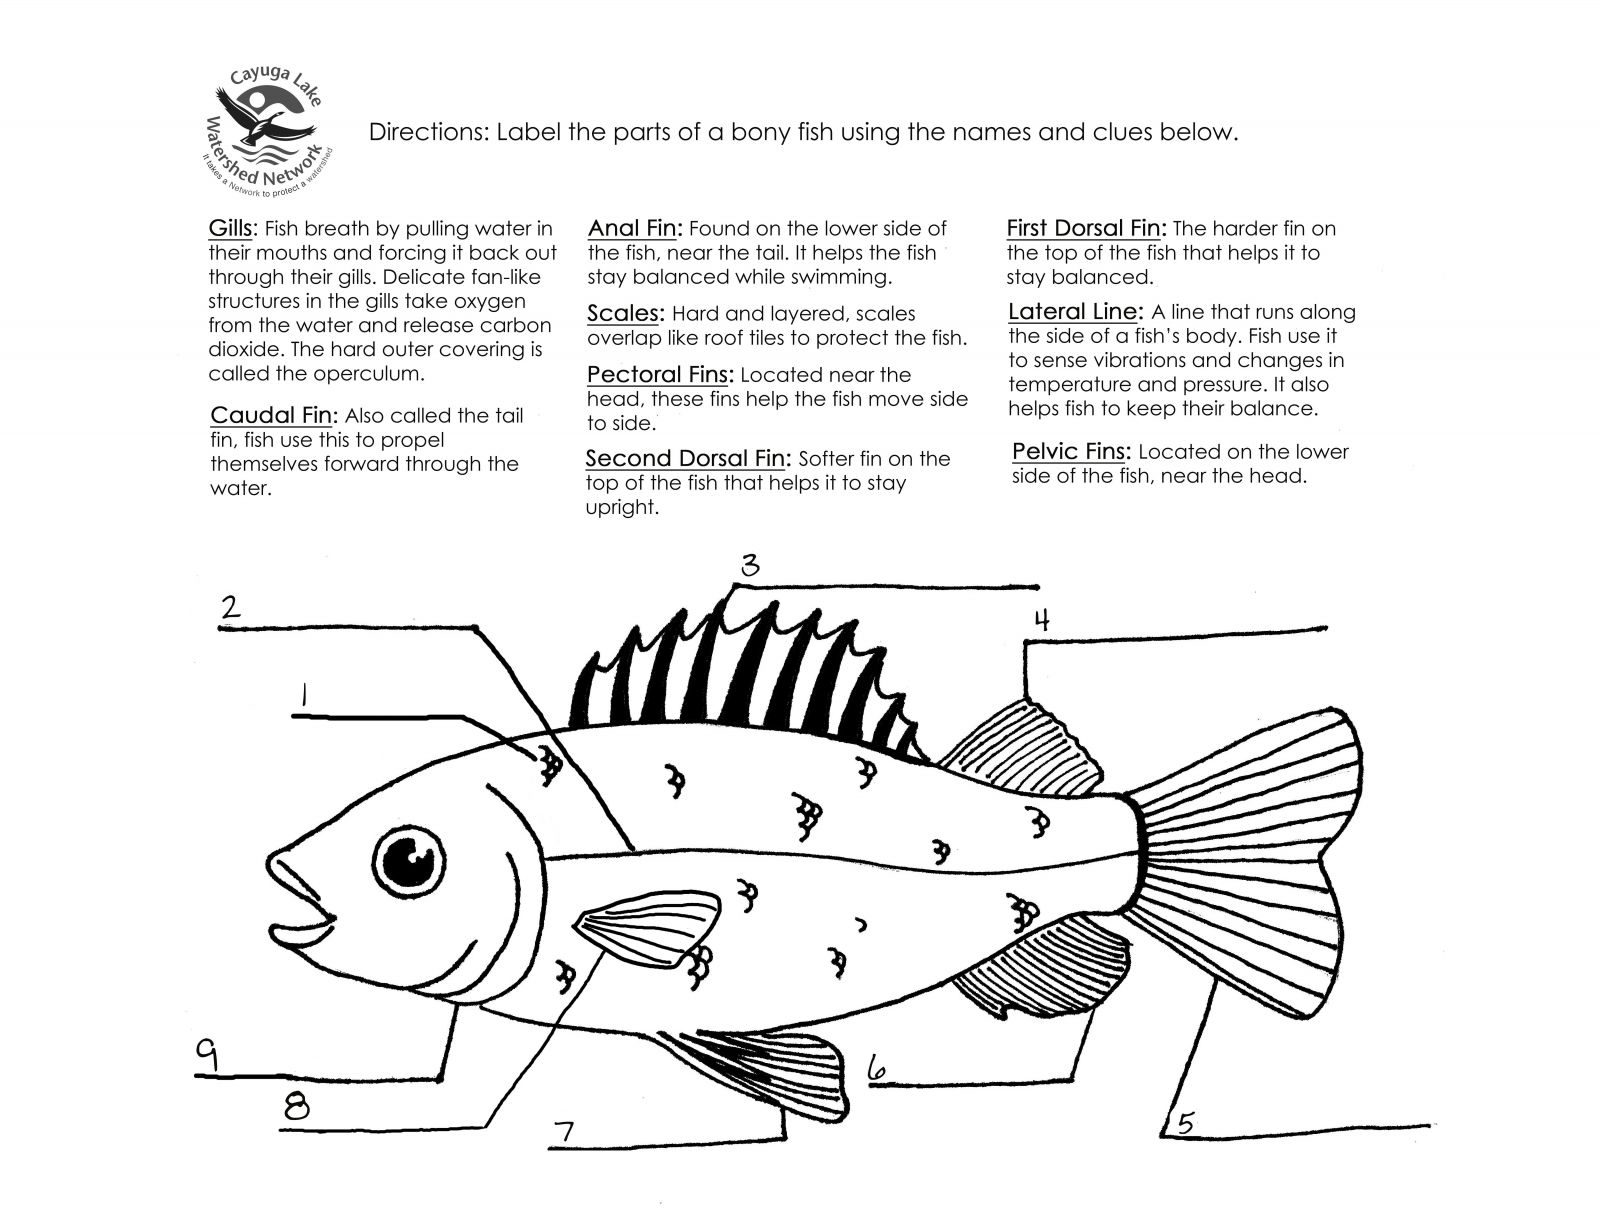 Fish Anatomy Worksheets Worksheets for all | Download and Share ...